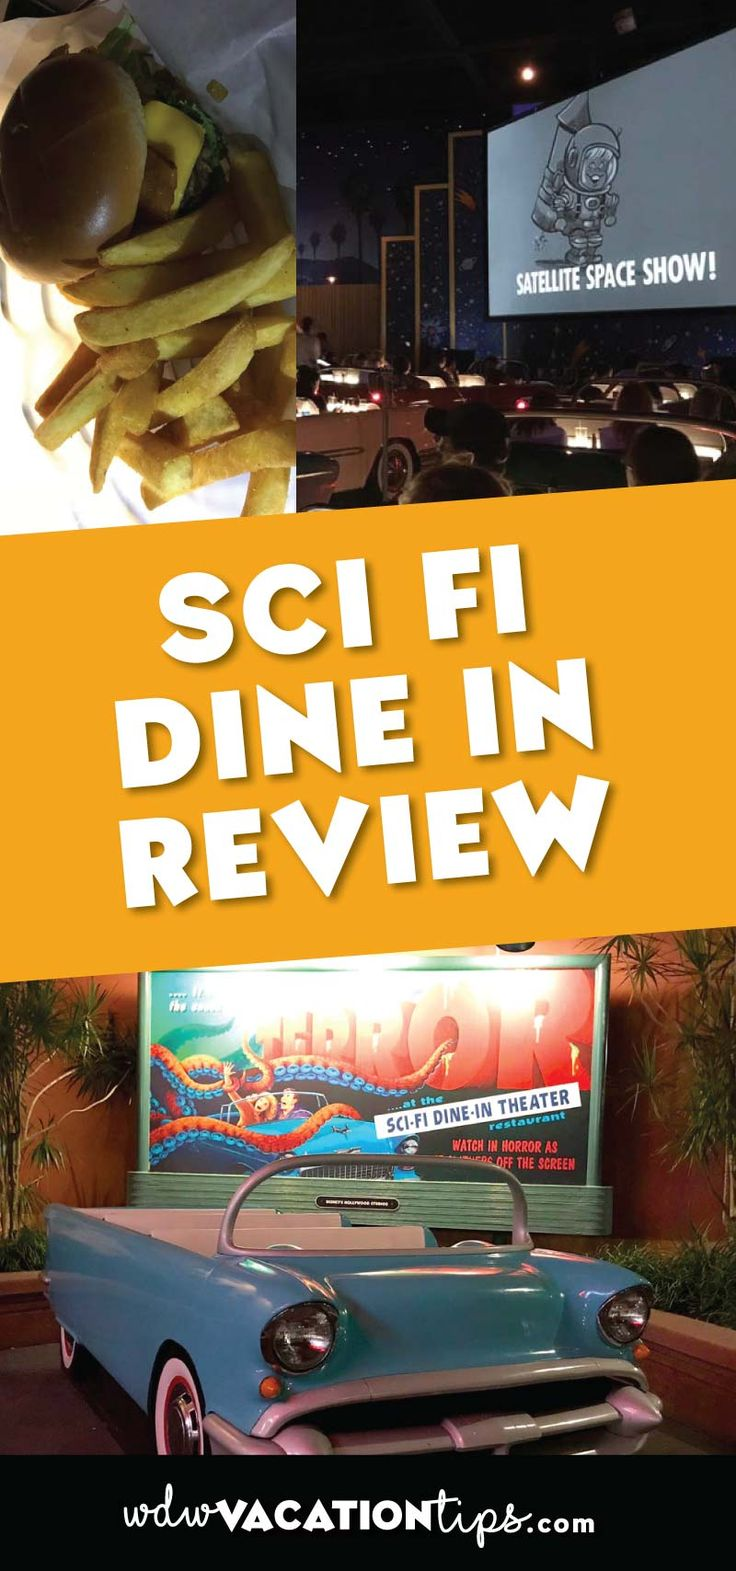 This place really wins on it's atmosphere! The whole place is modeled after a 50's drive in theater complete with vintage cars and sci-fi movies up on the movie screen.